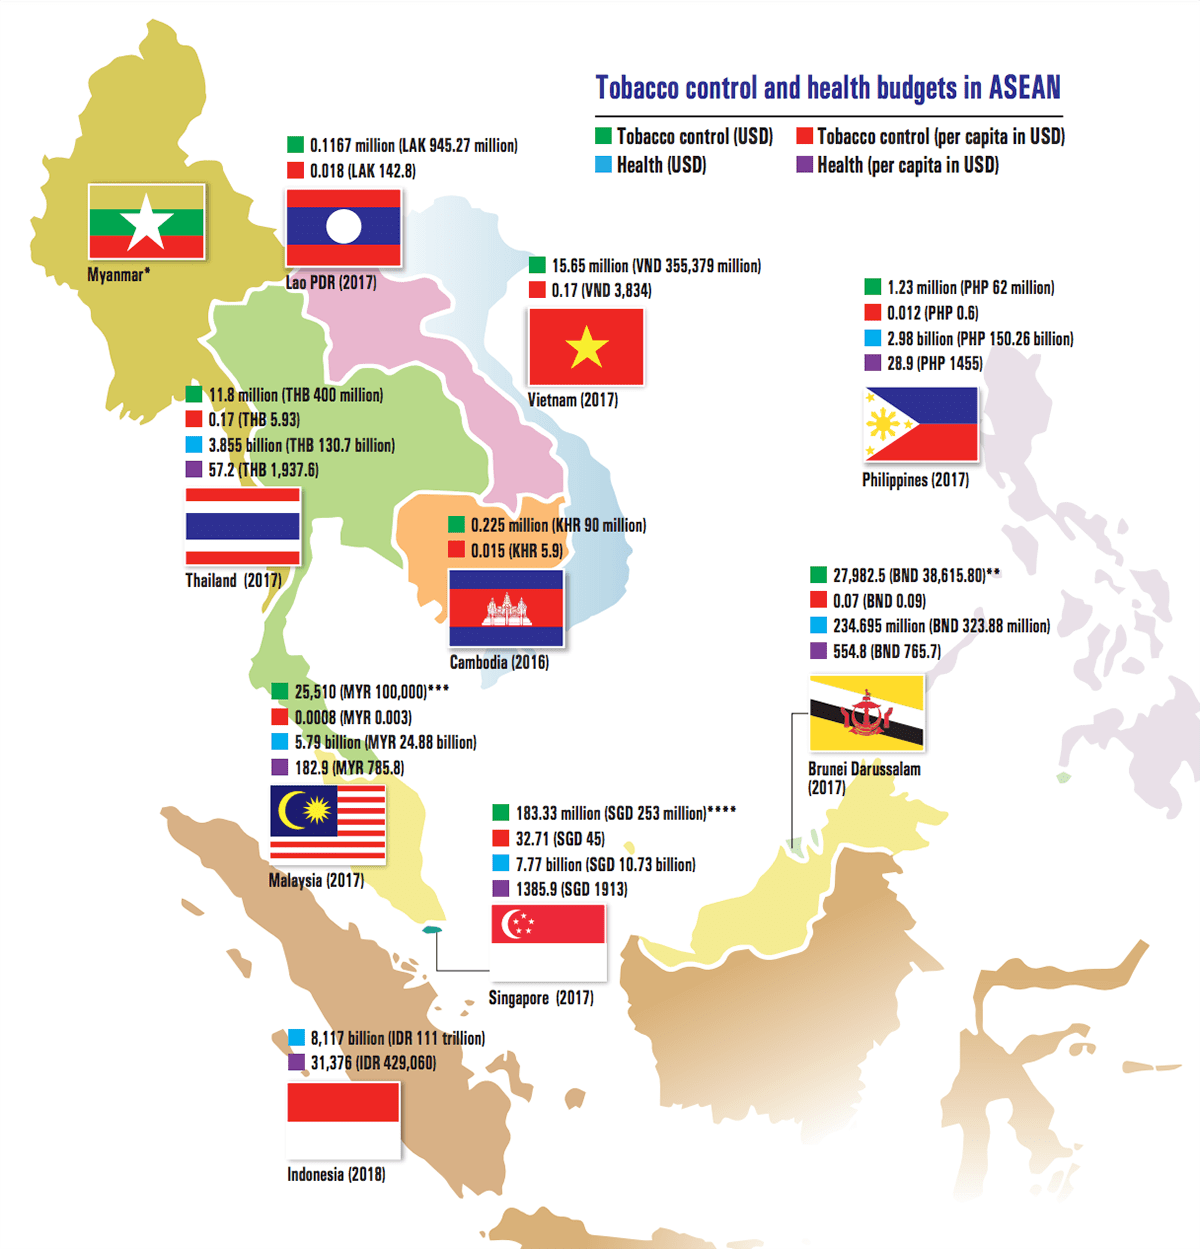 Map: Tobacco control and health budget in ASEAN